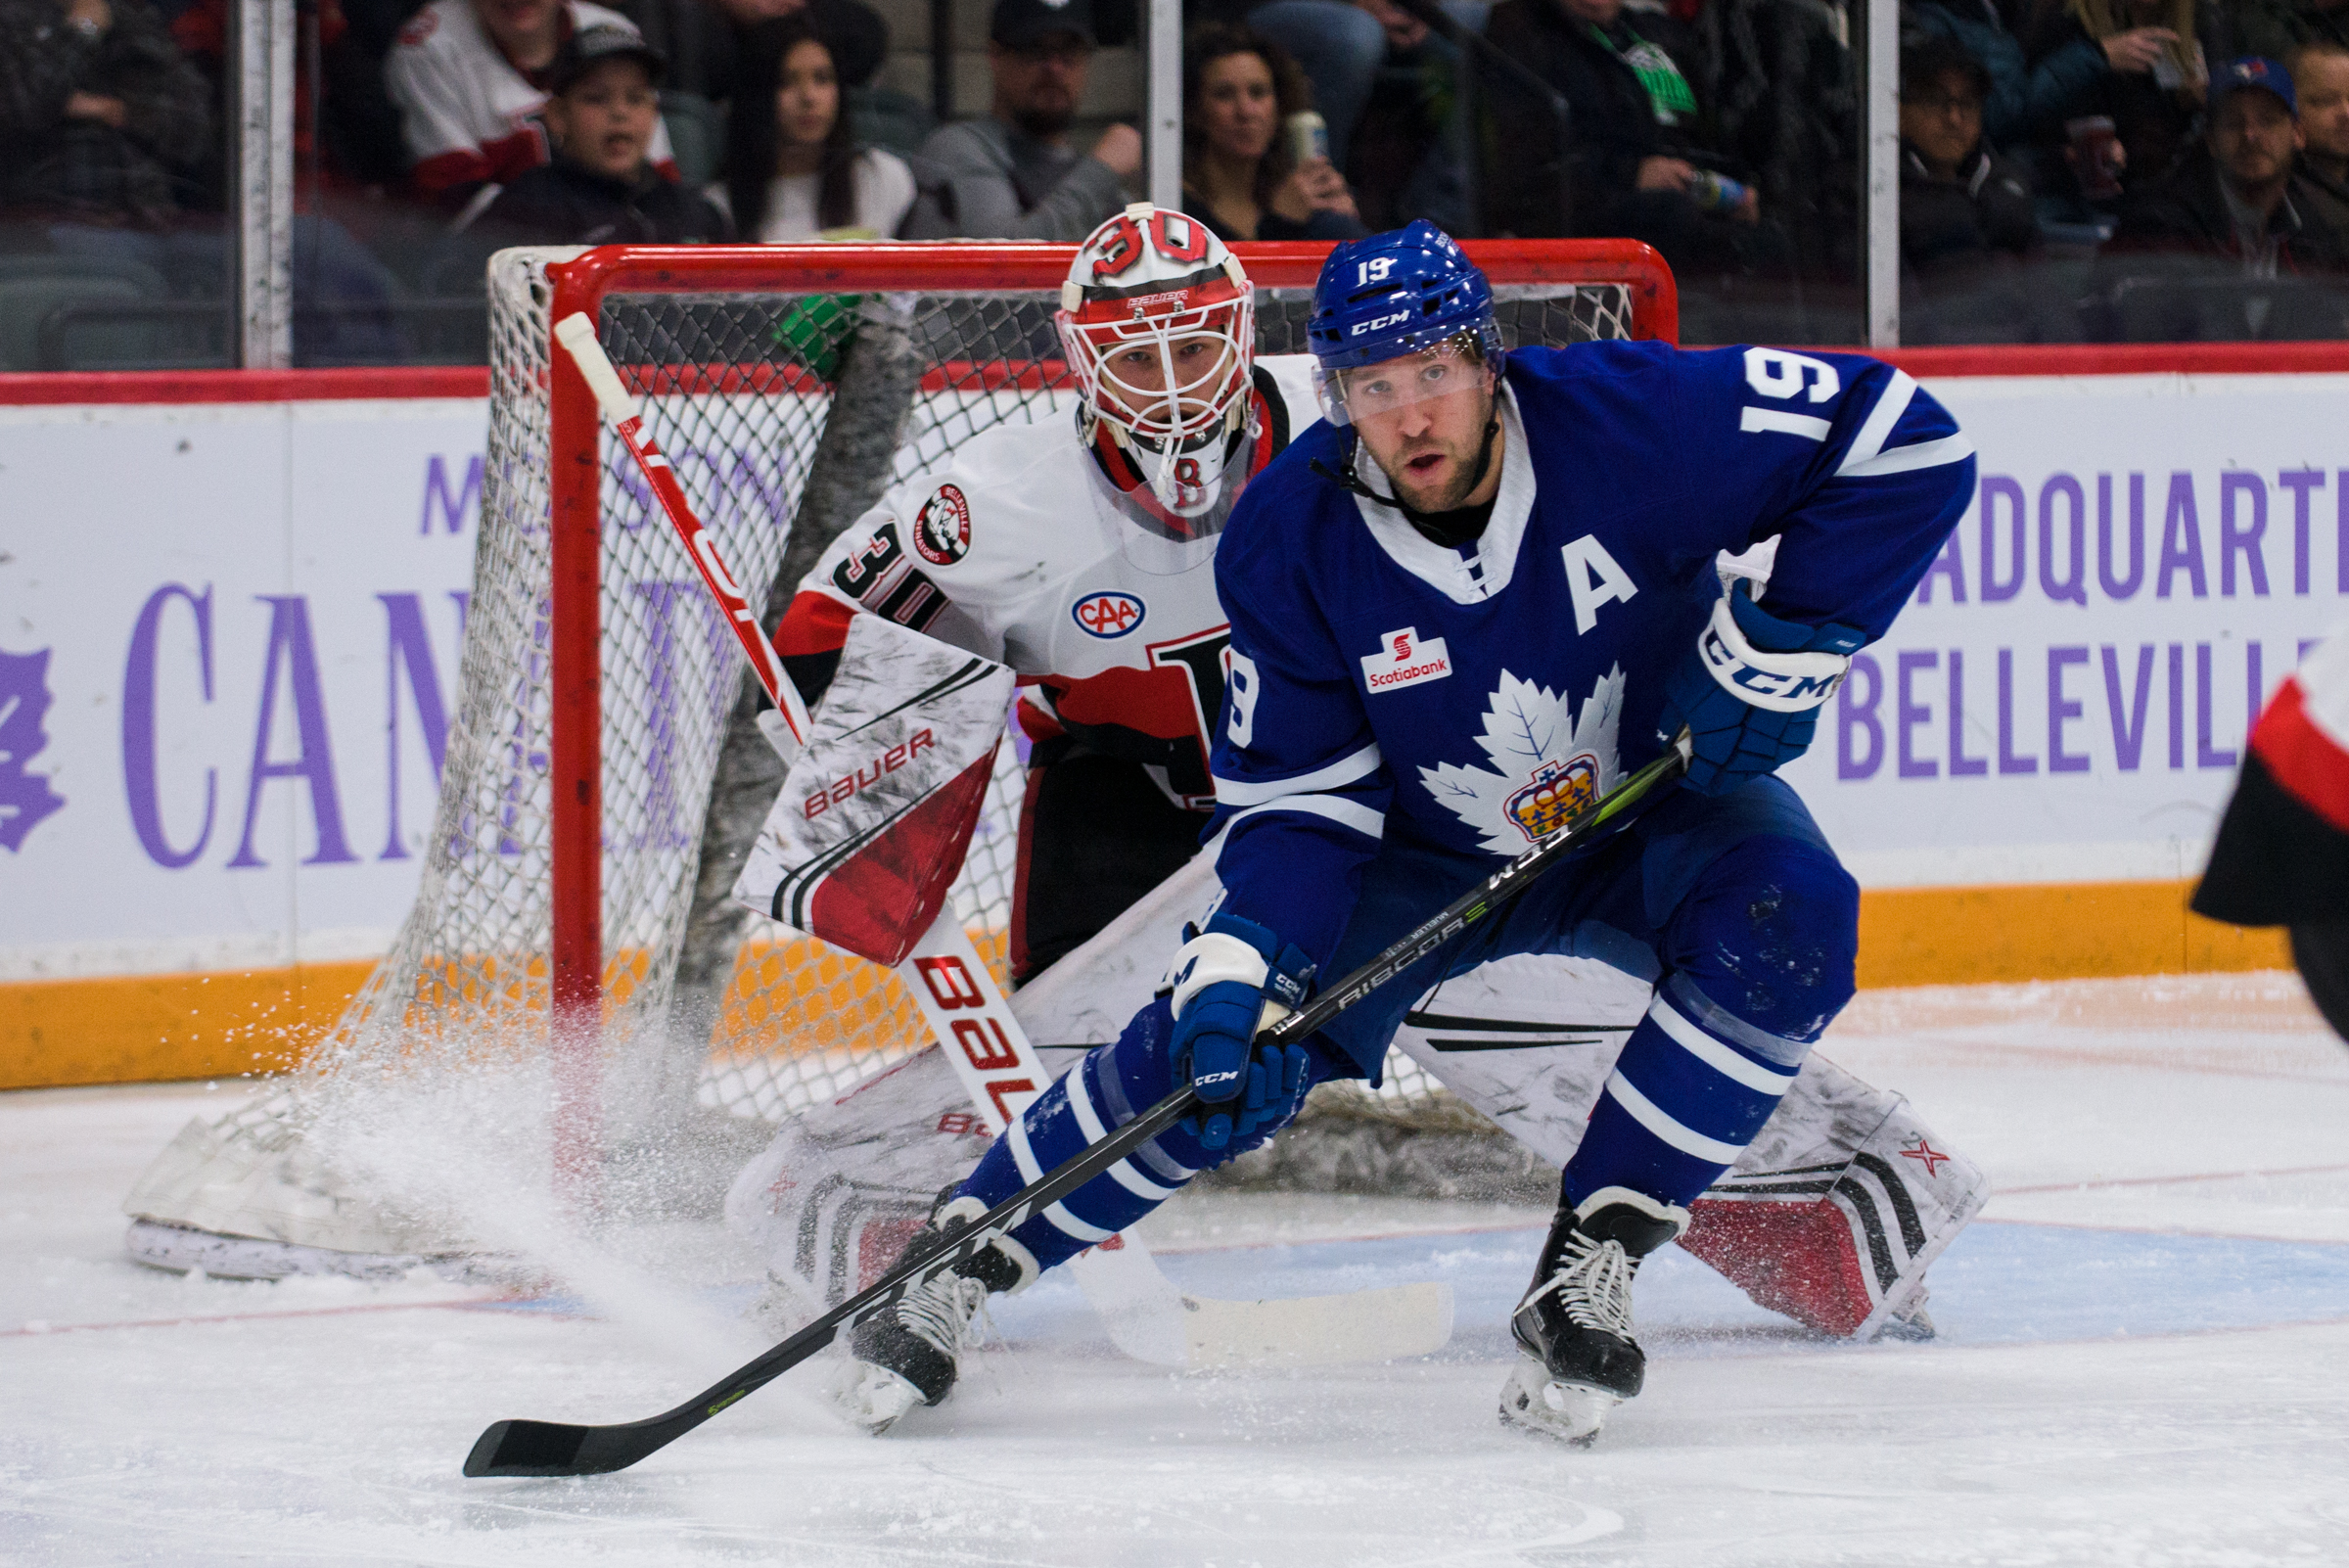 Marlies outmuscle Senators to win second game of back-to-back